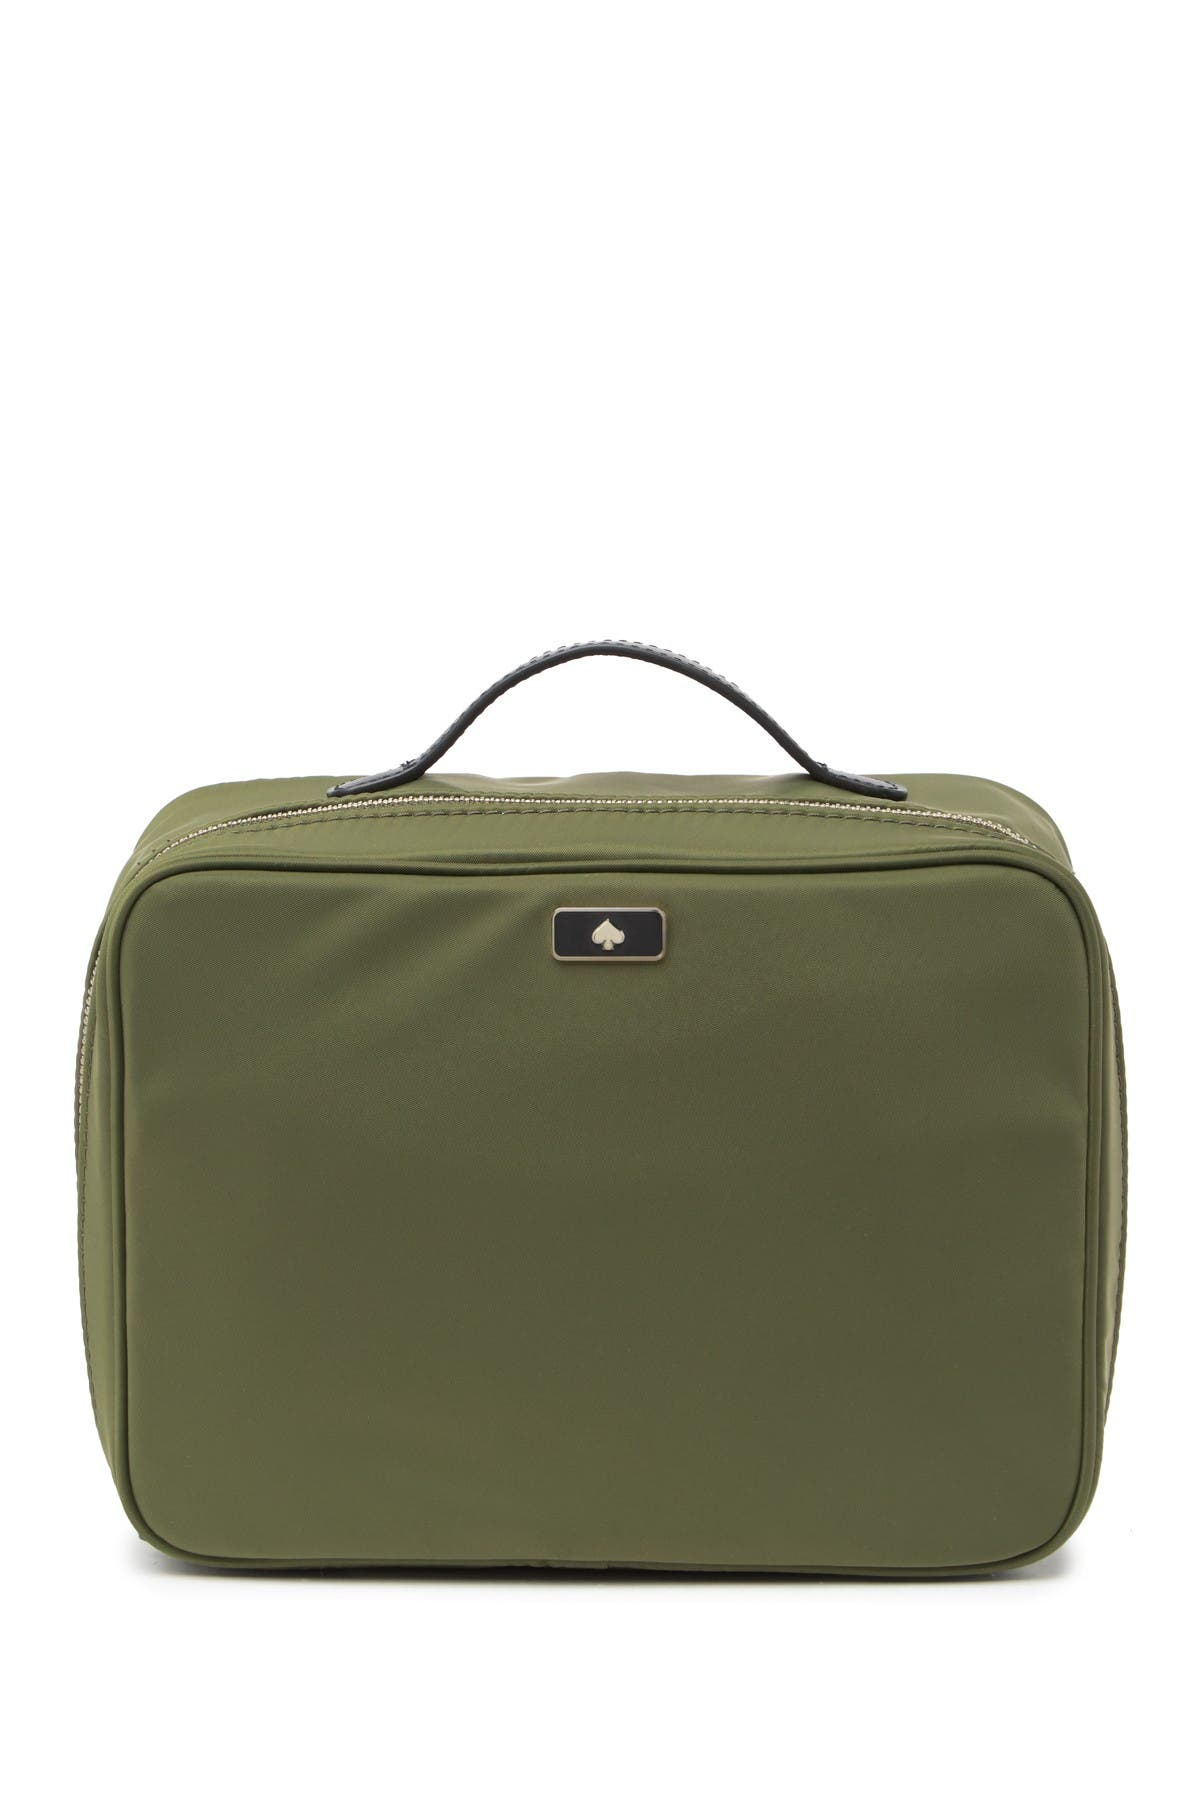 Image of kate spade new york sapling travel cosmetic case